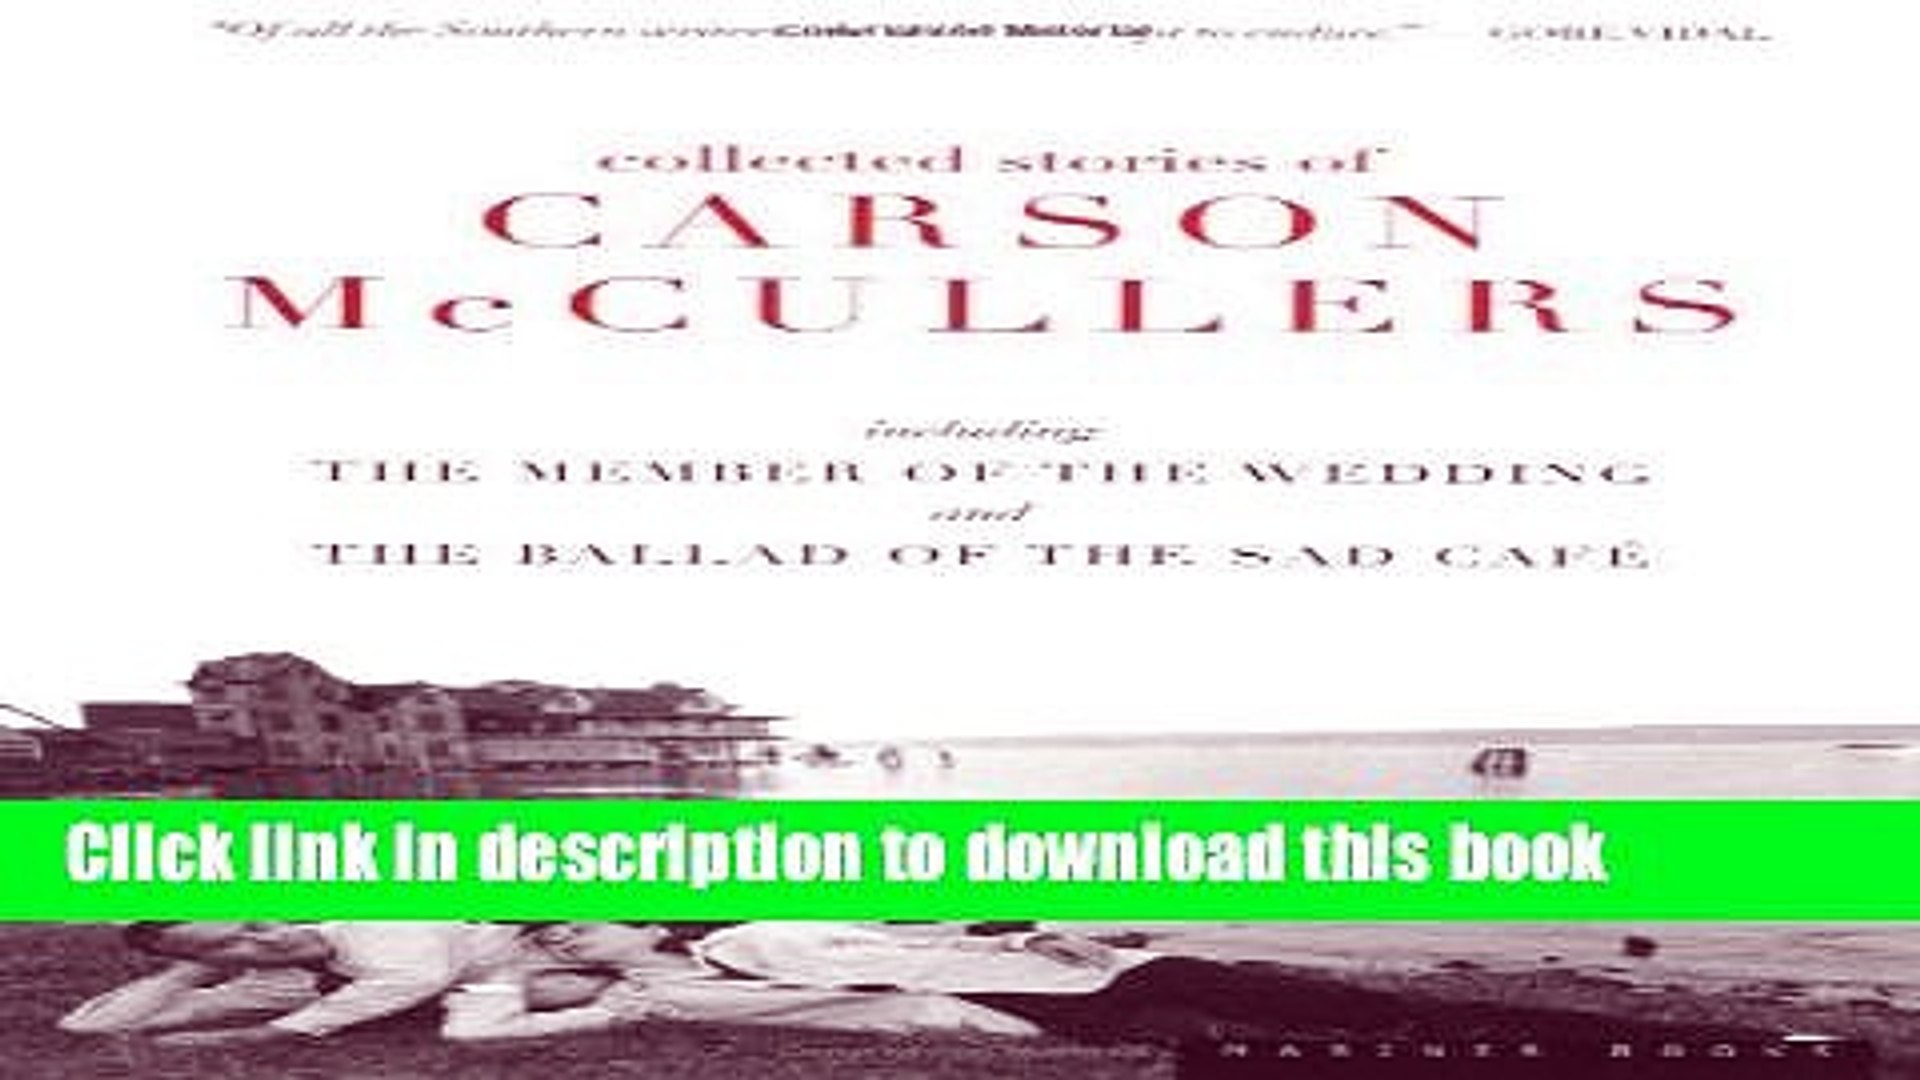 Read Collected Stories of Carson McCullers, including The Member of the Wedding and The Ballad of